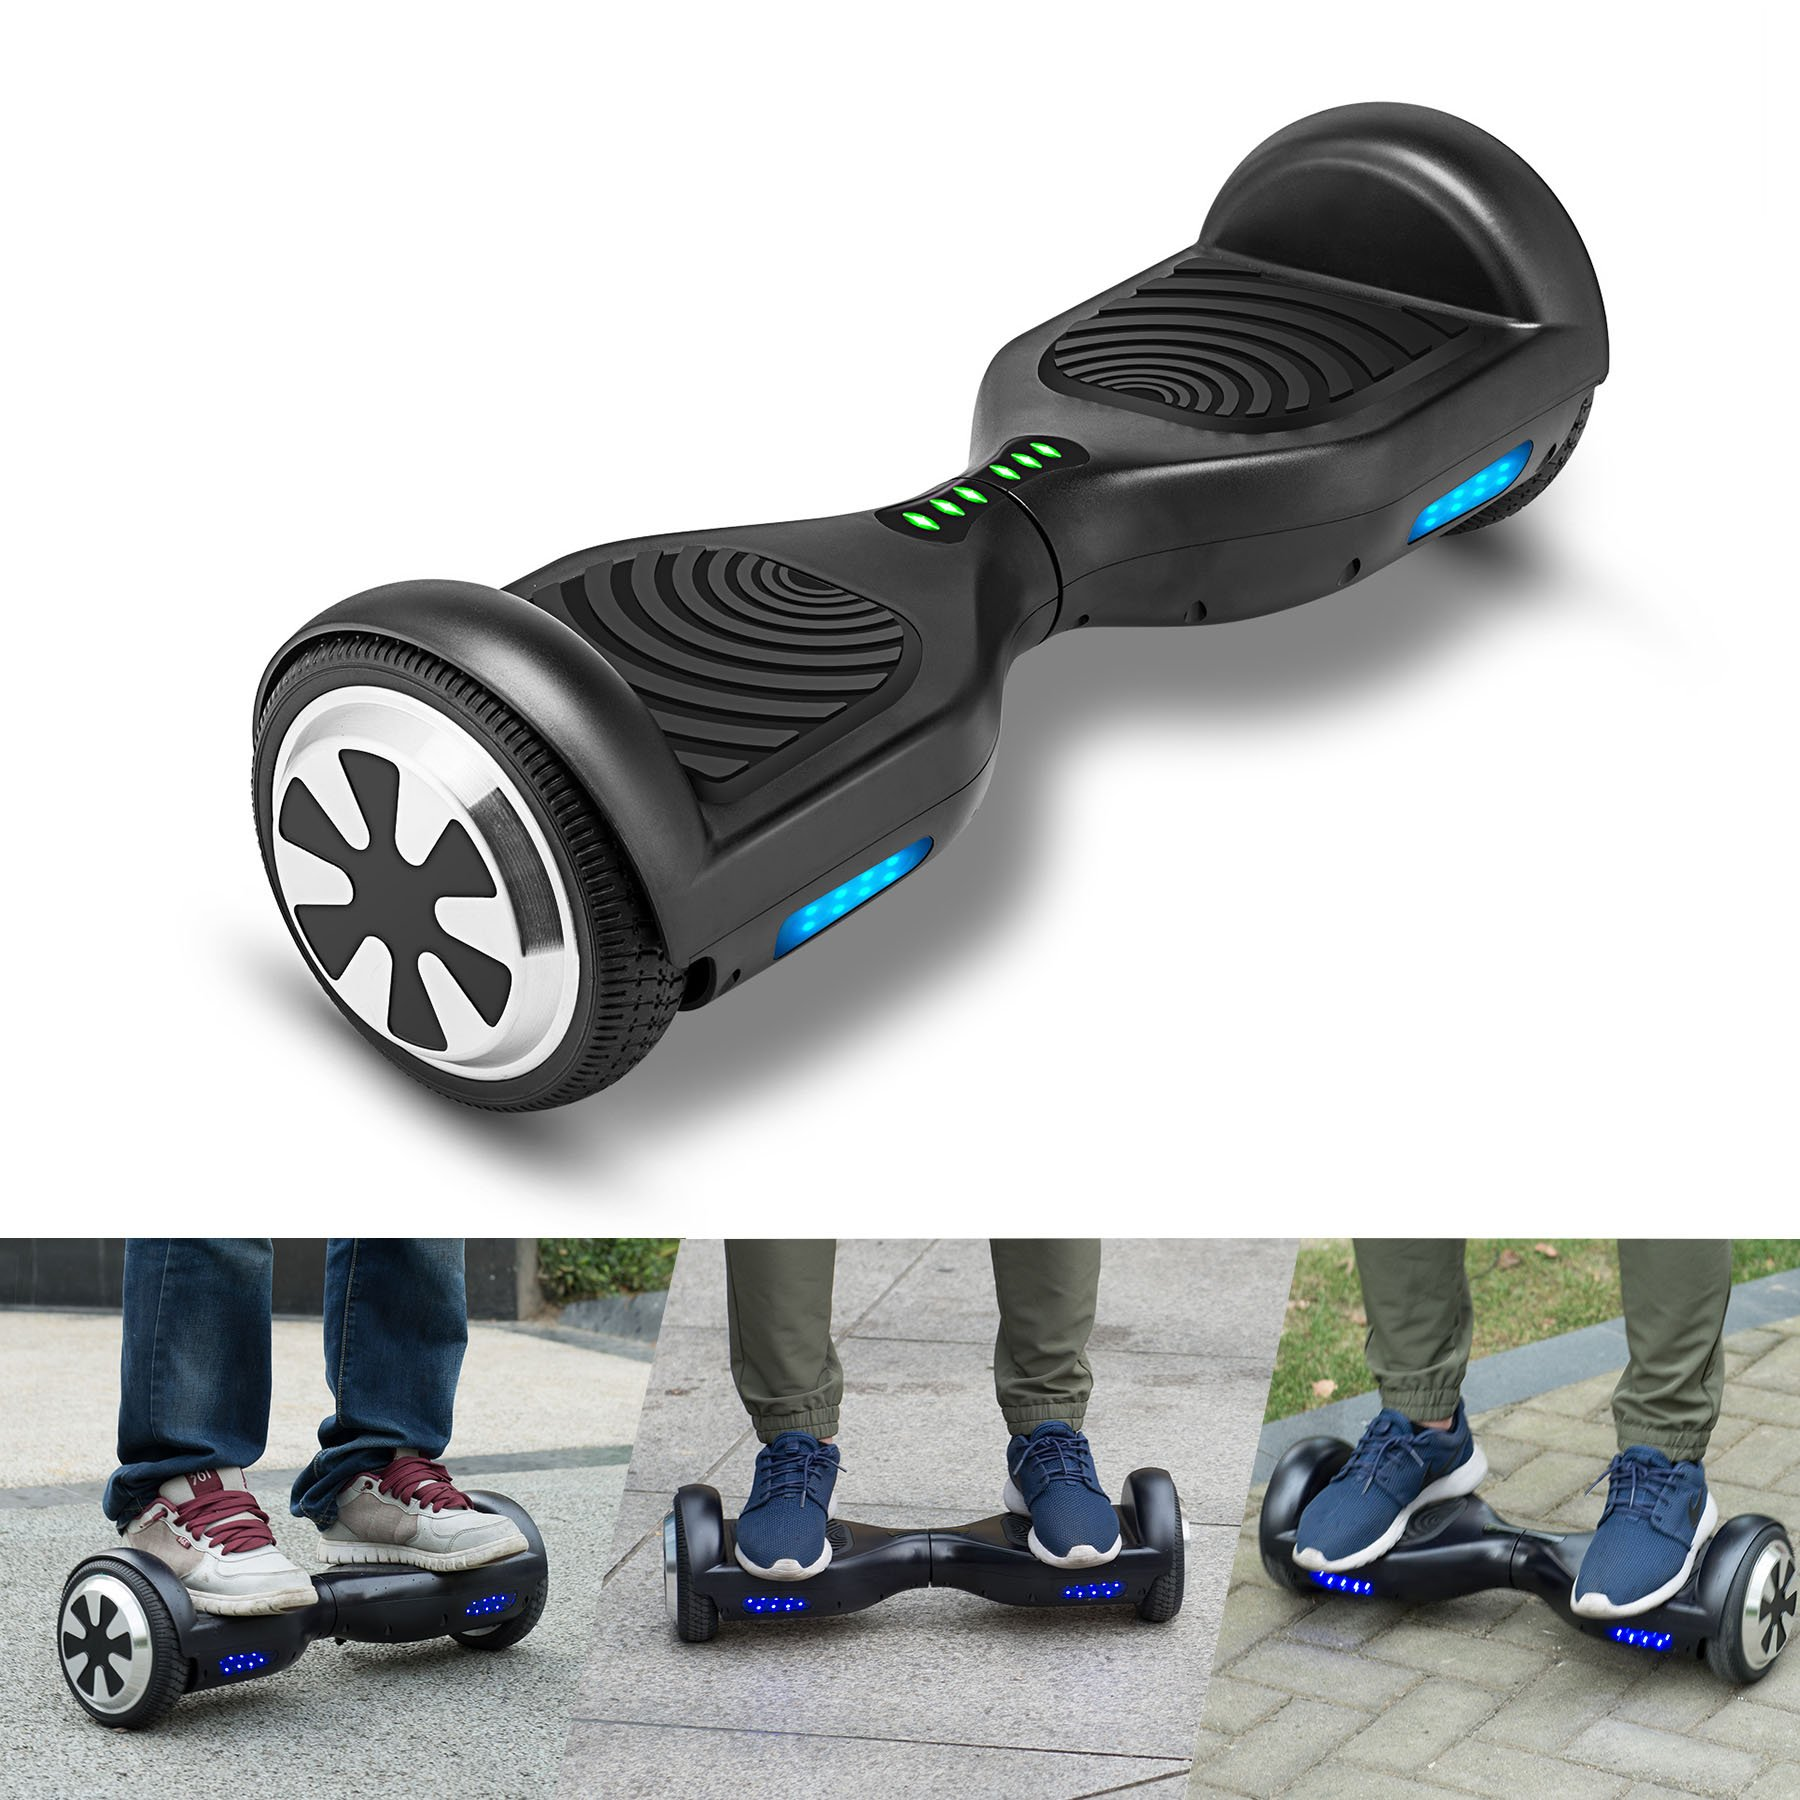 VEEKO Self Balancing Scooter Black Hoverboard with LED Indicator Lights, 350W Dual Motor, UL 2272/2271 Certificate, Alloy Durable Wheels by VEEKO (Image #5)